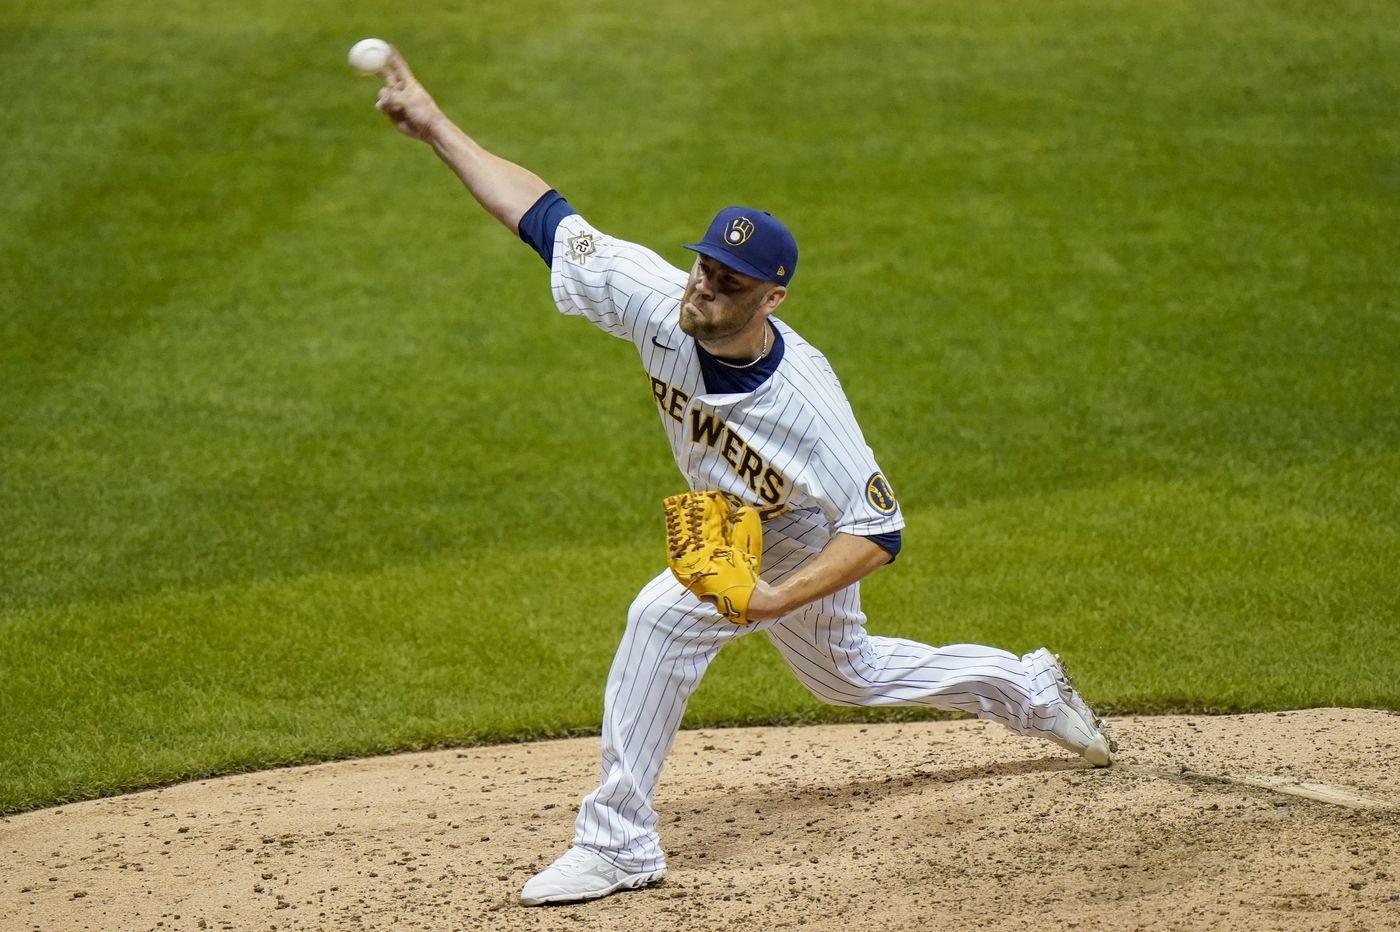 Phillies beat trade deadline by acquiring reliever David Phelps from Milwaukee Brewers